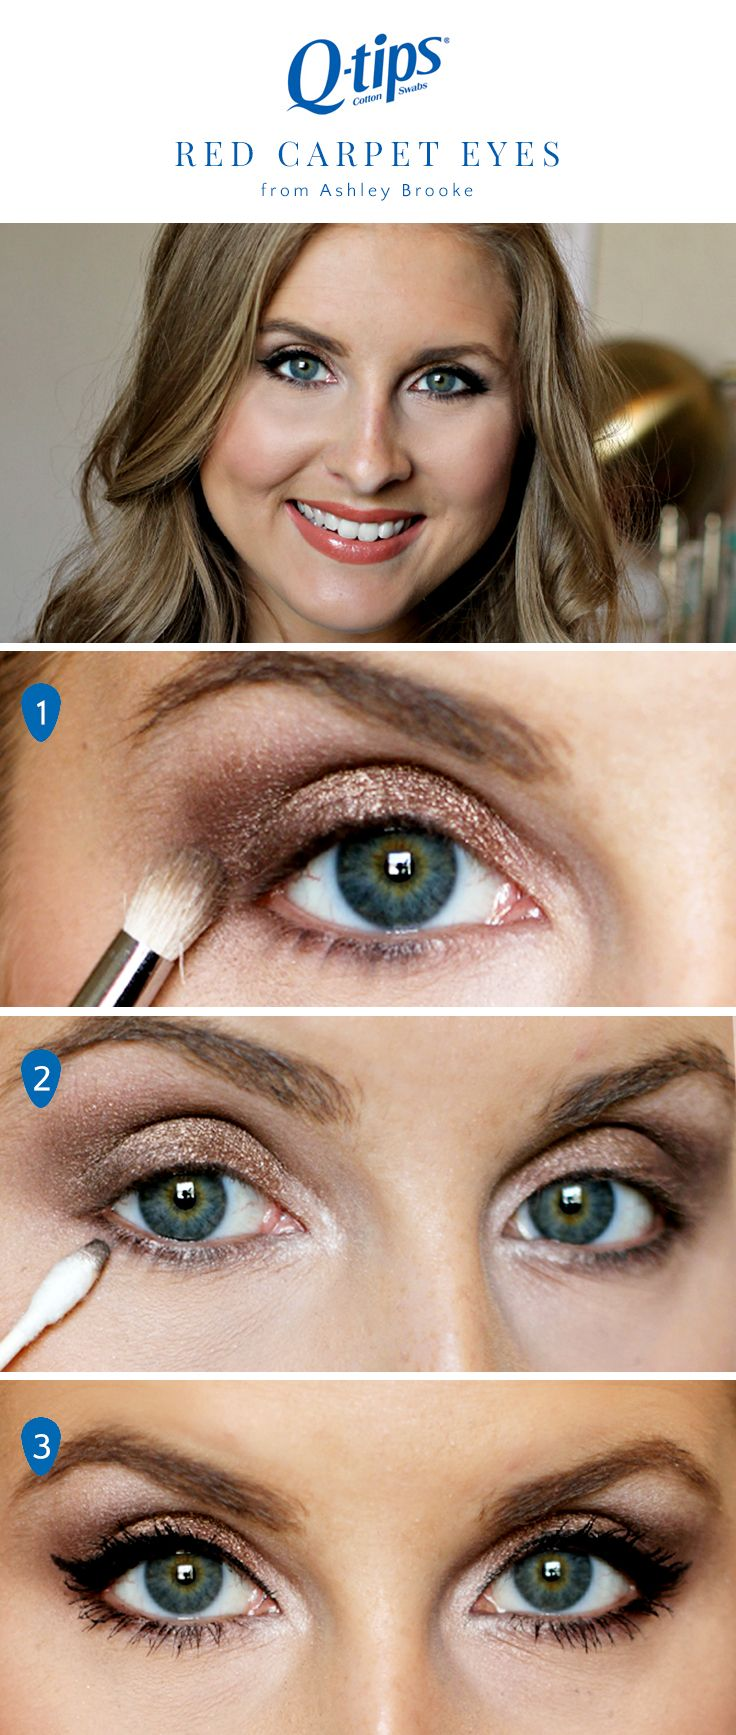 Roll Out The Red Carpet Makeup Tutorial Ashley Brooke Red Carpet Makeup Tutorial Makeup Tutorial Eyeshadow Red Carpet Makeup